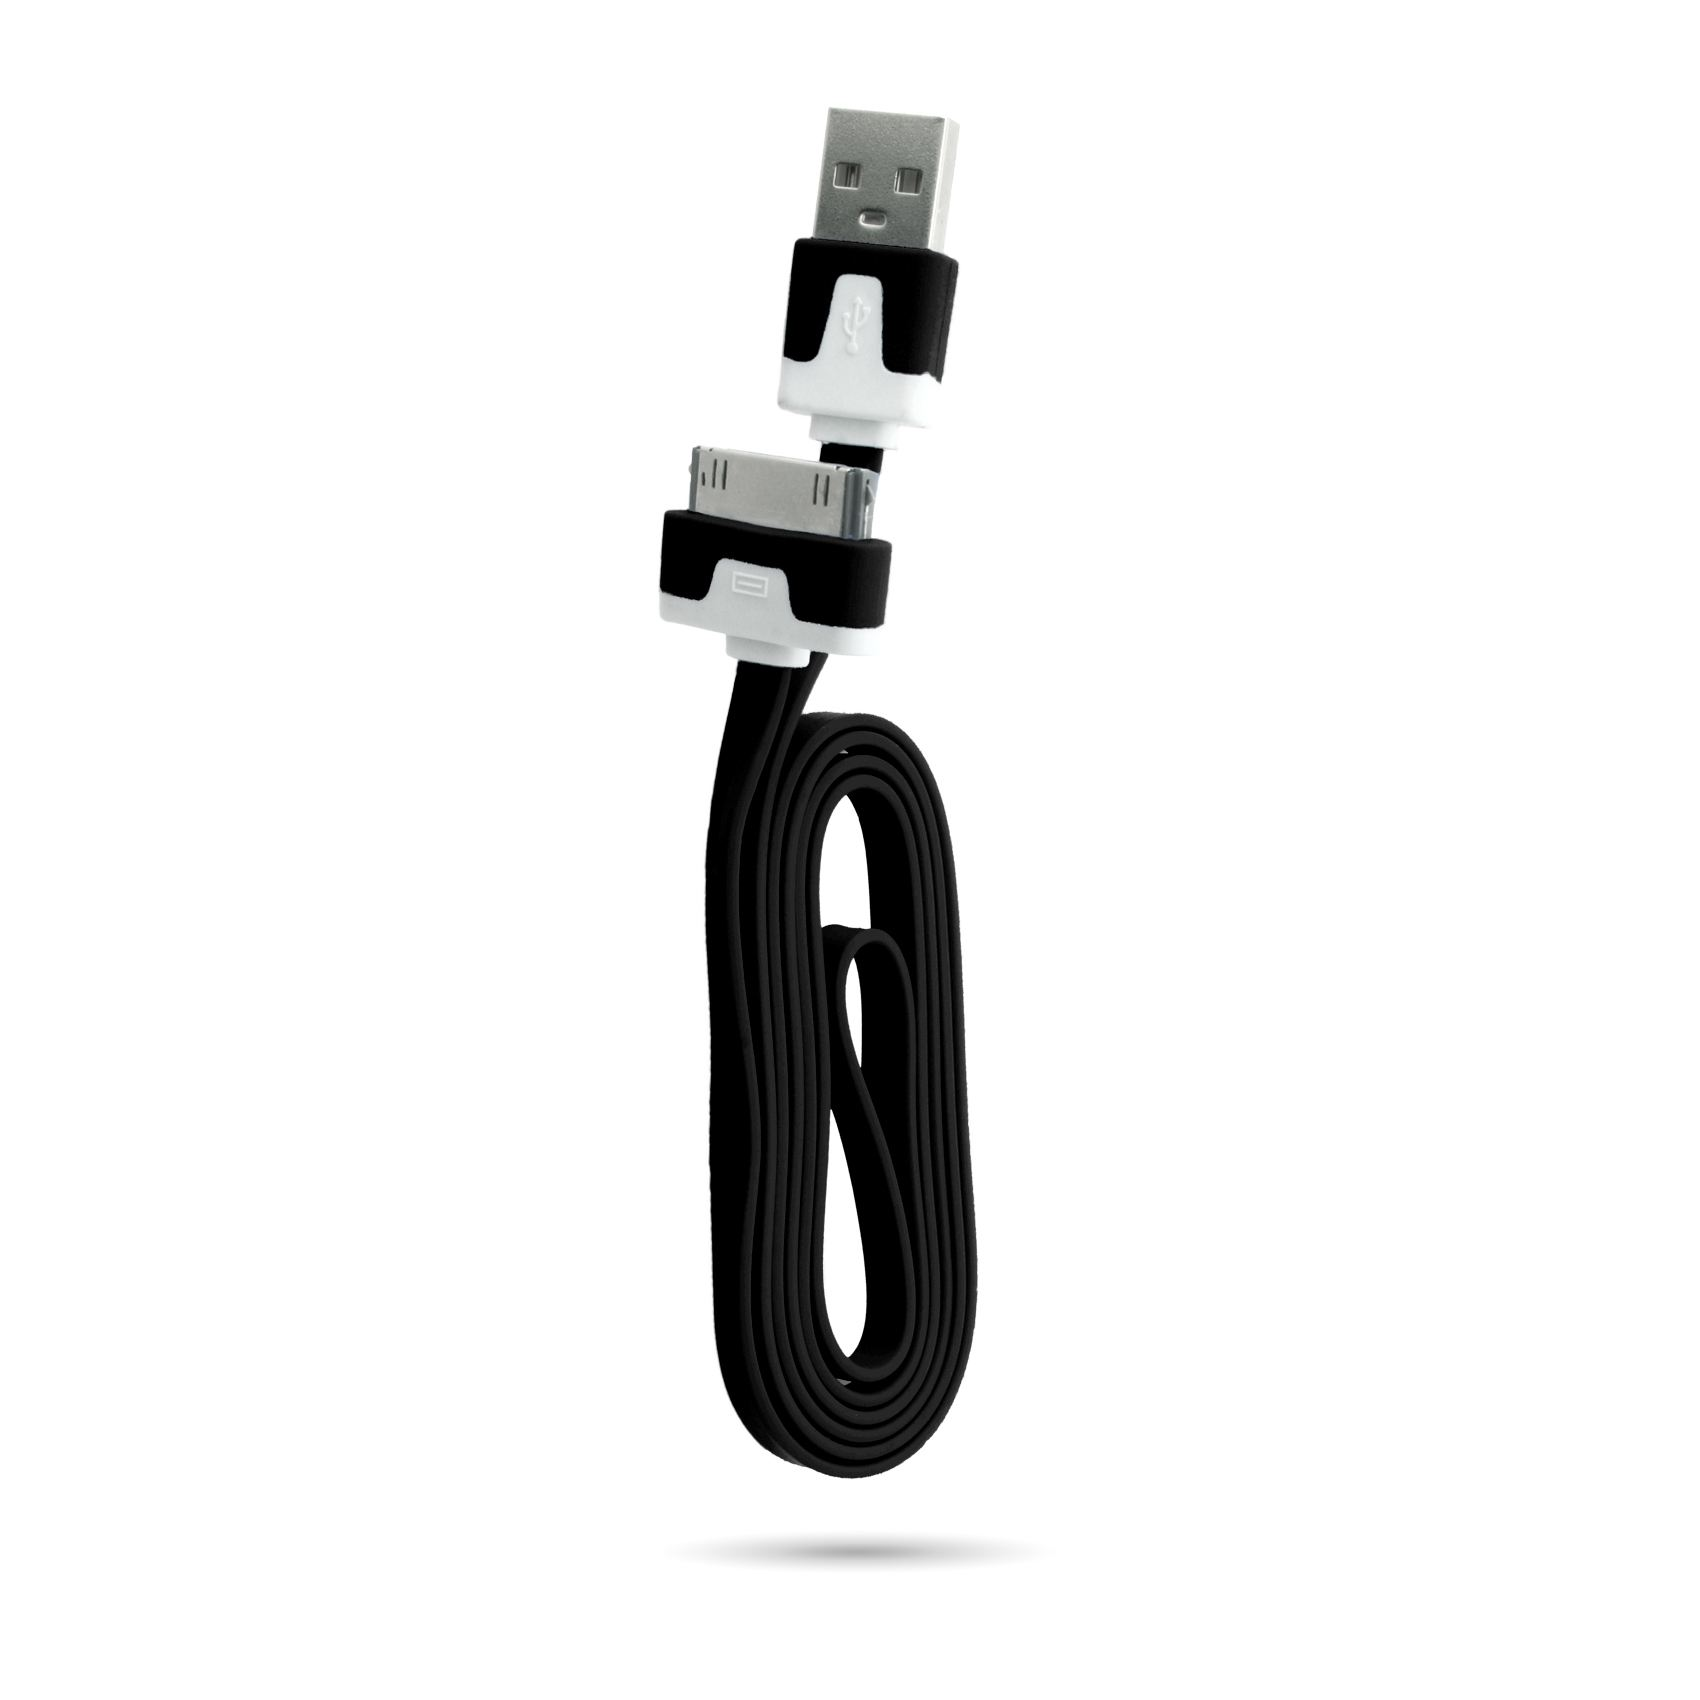 Cavo-USB-Piatto-Caricabatterie-Dati-1-2-3-Metri-per-iPhone-Apple-4s-iPad-3-2